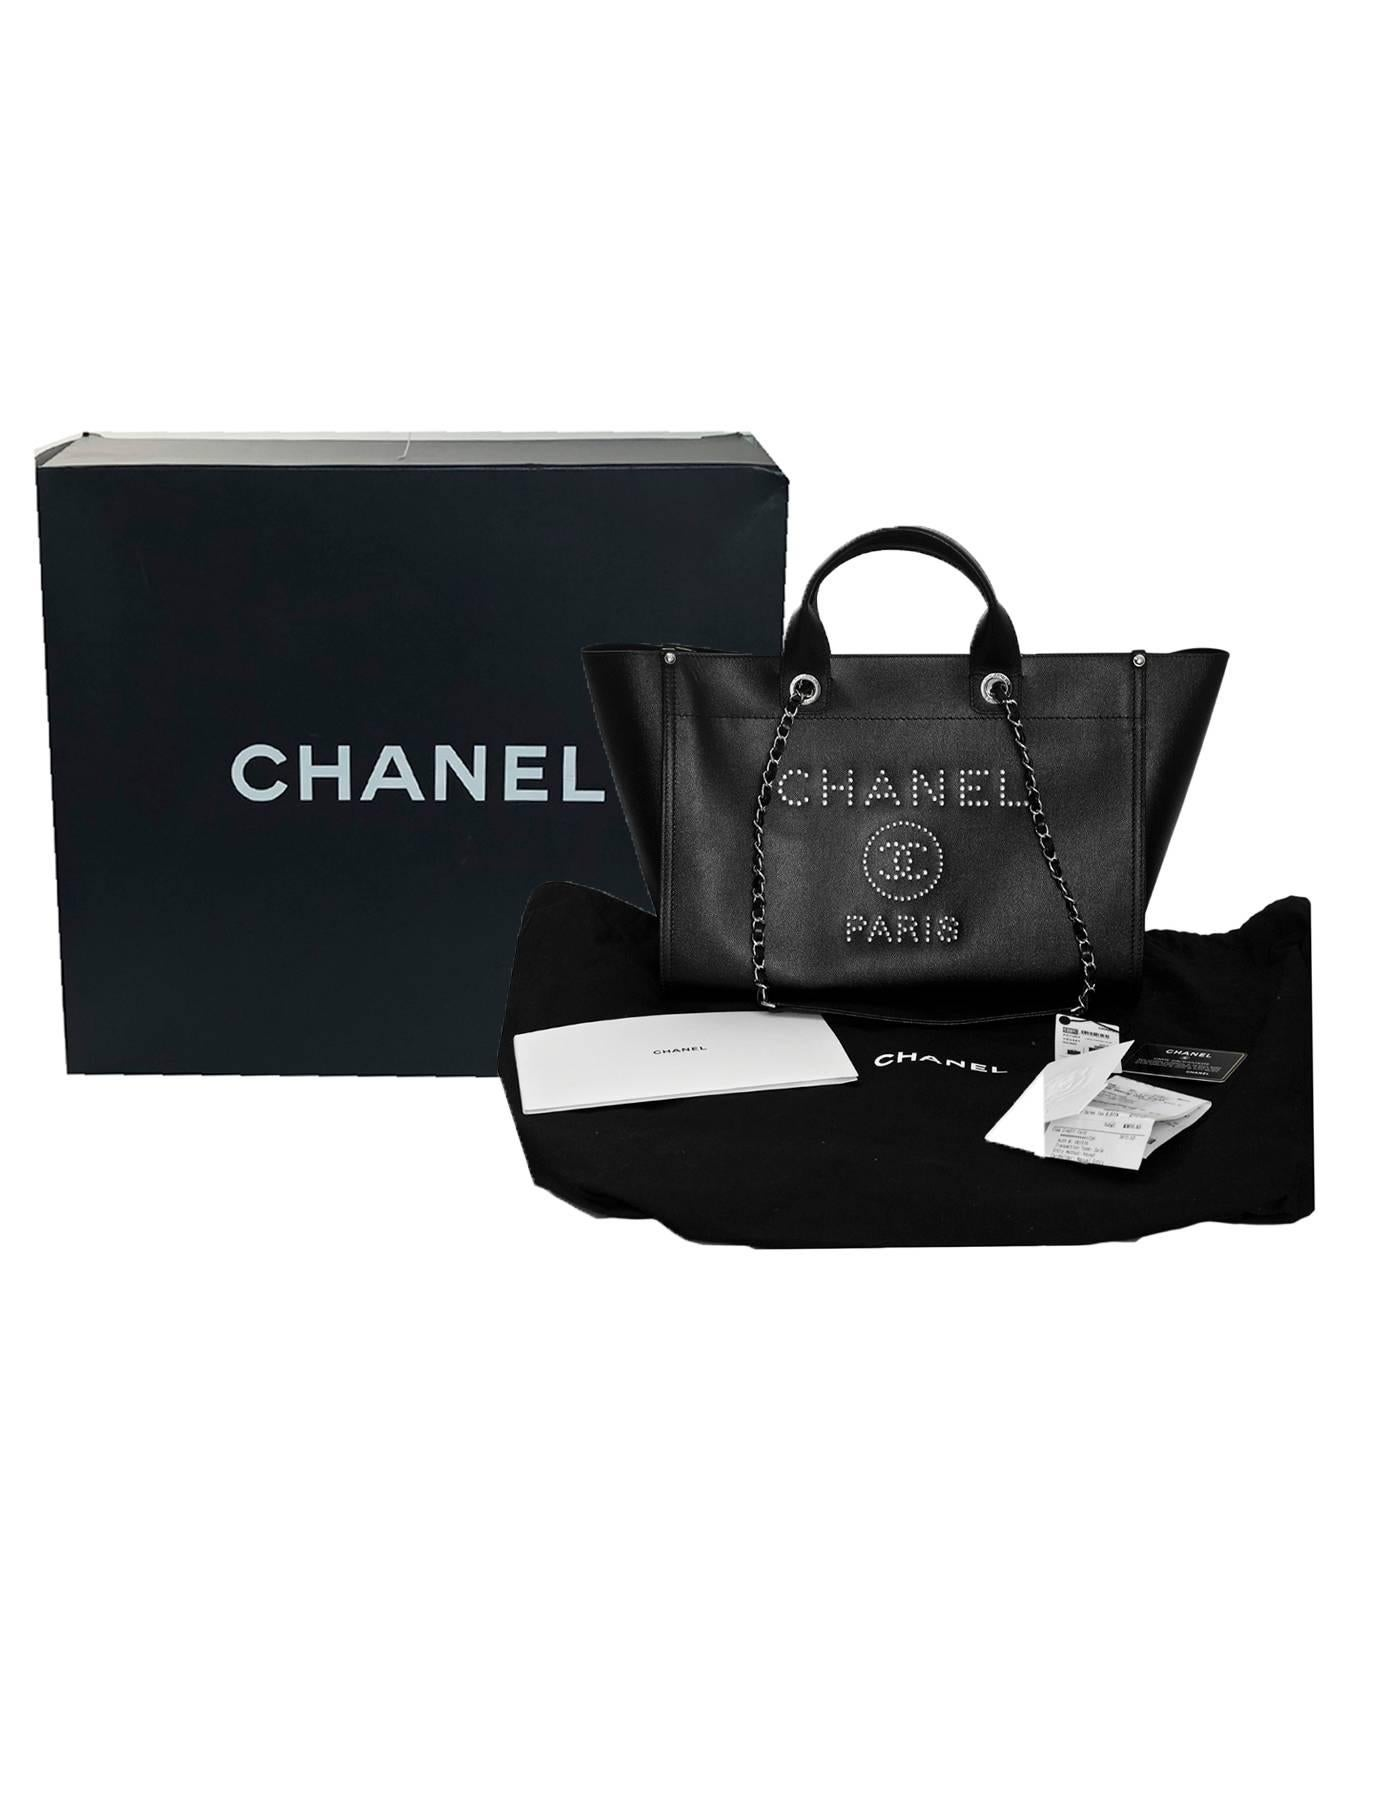 47a72e42299b Chanel Black Grained Calfskin Studded Medium Deauville Tote Bag, 2018 at  1stdibs